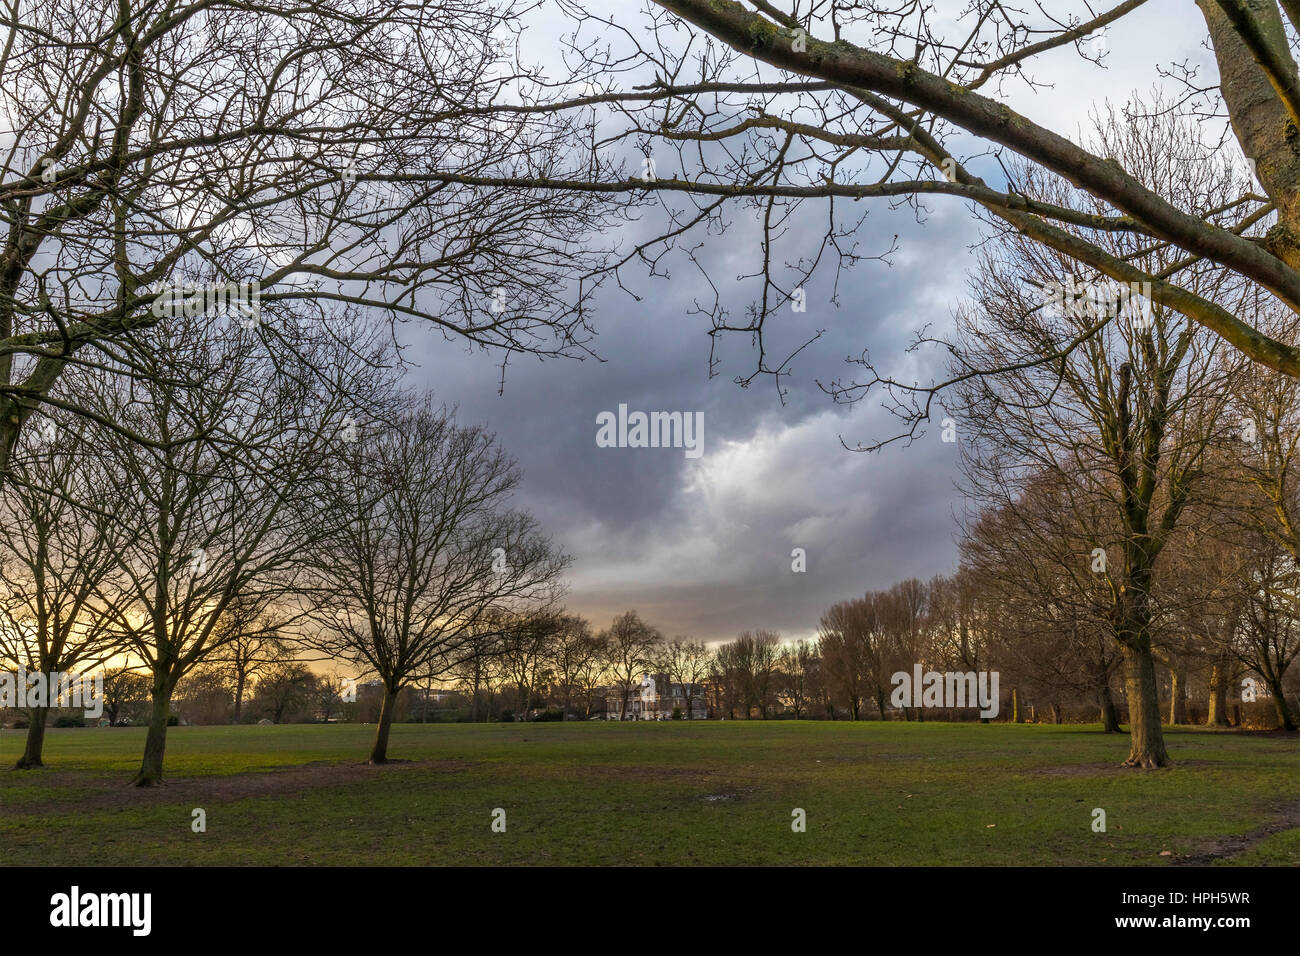 Sunset at a regents park in unted kingdom on a overcast sky - Stock Image